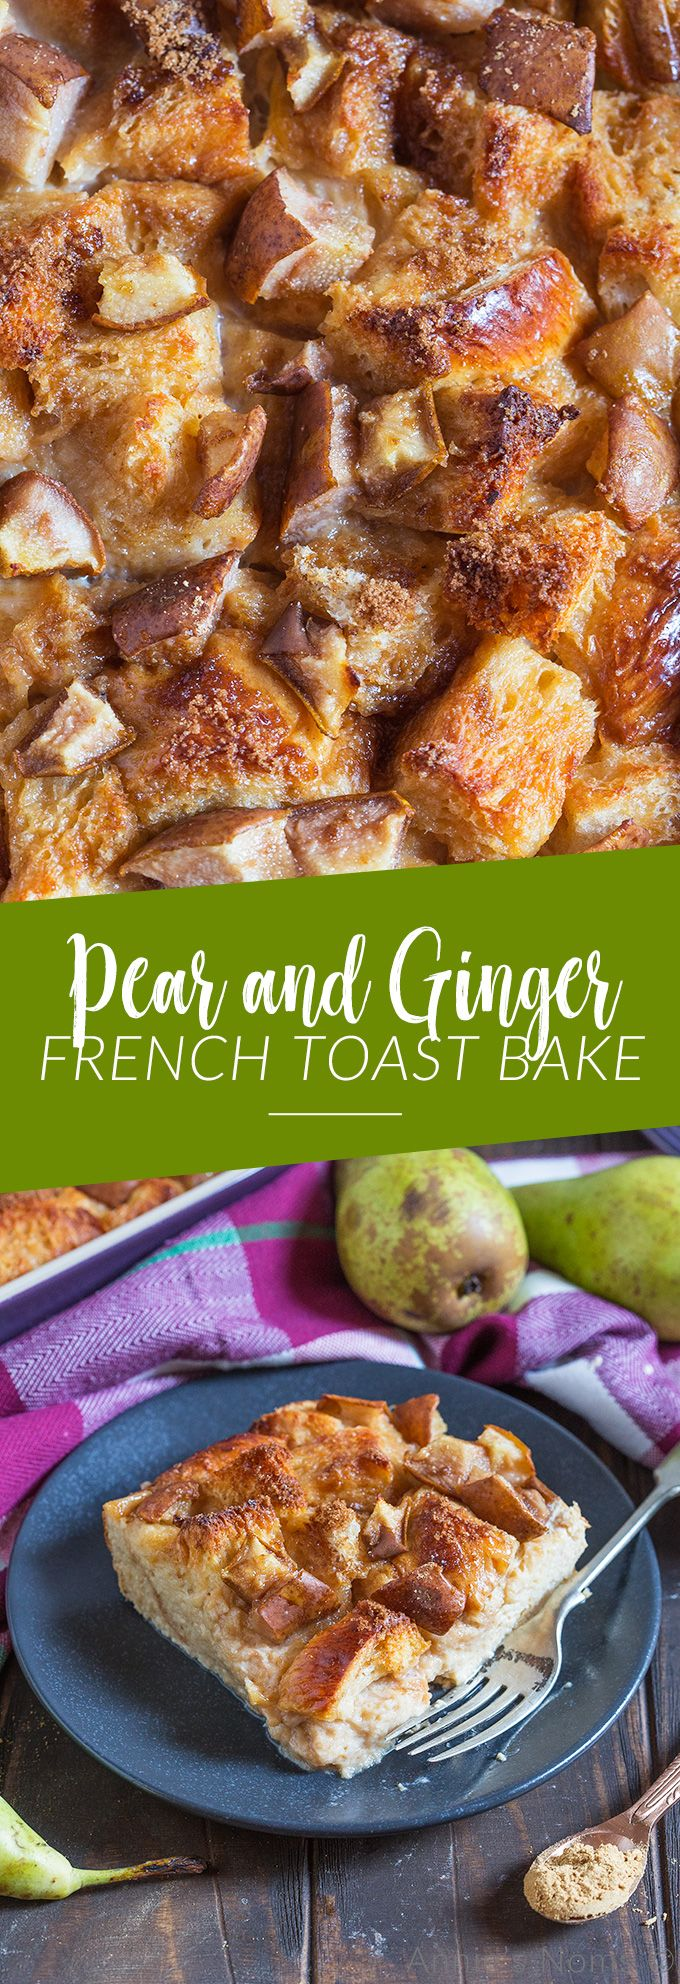 Pear and Ginger French Toast Bake